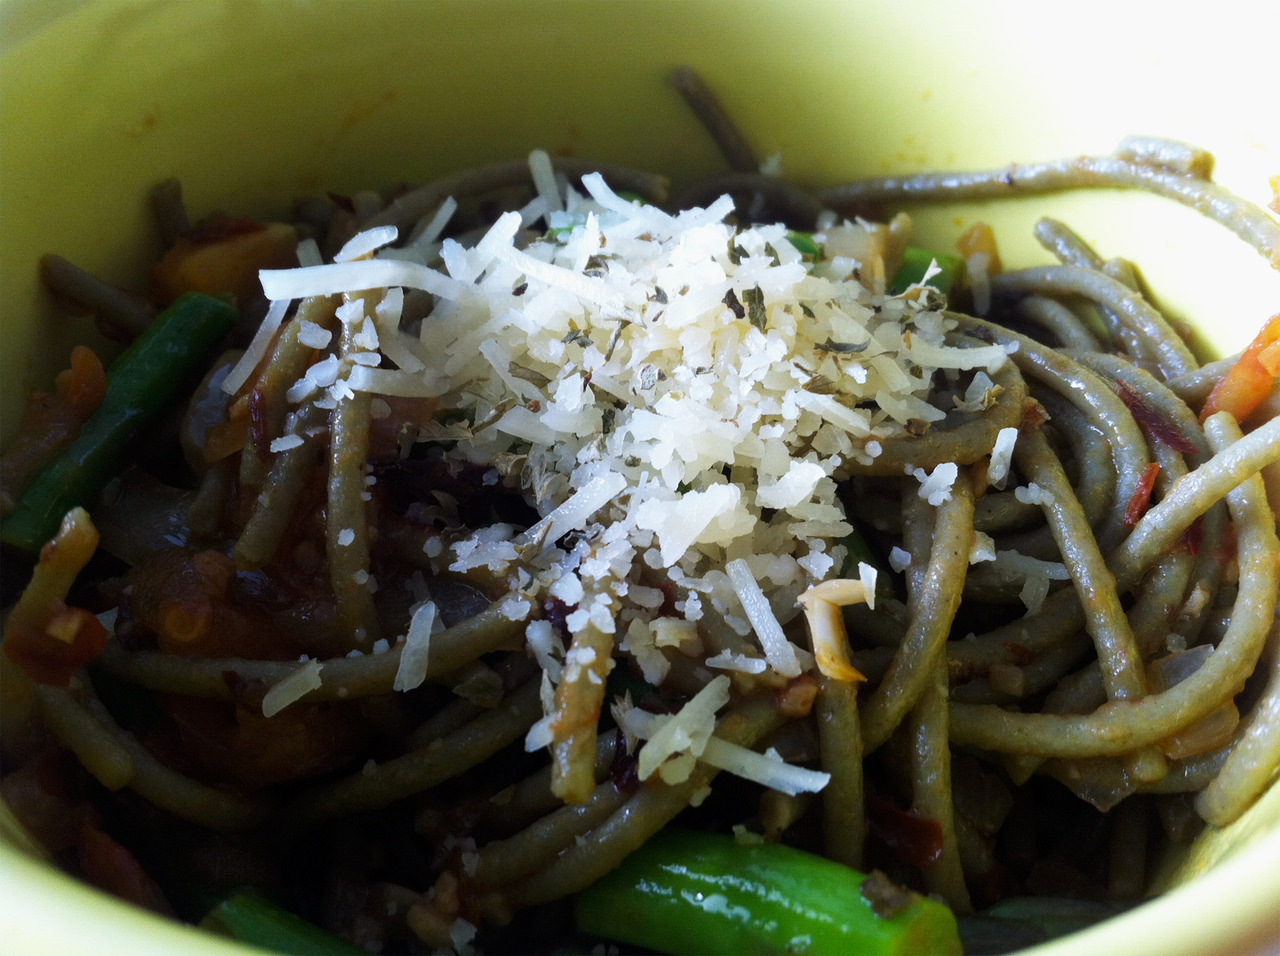 Another shot of my spinach pasta topped with fresh Parmesan cheese. -Braised Bombshell